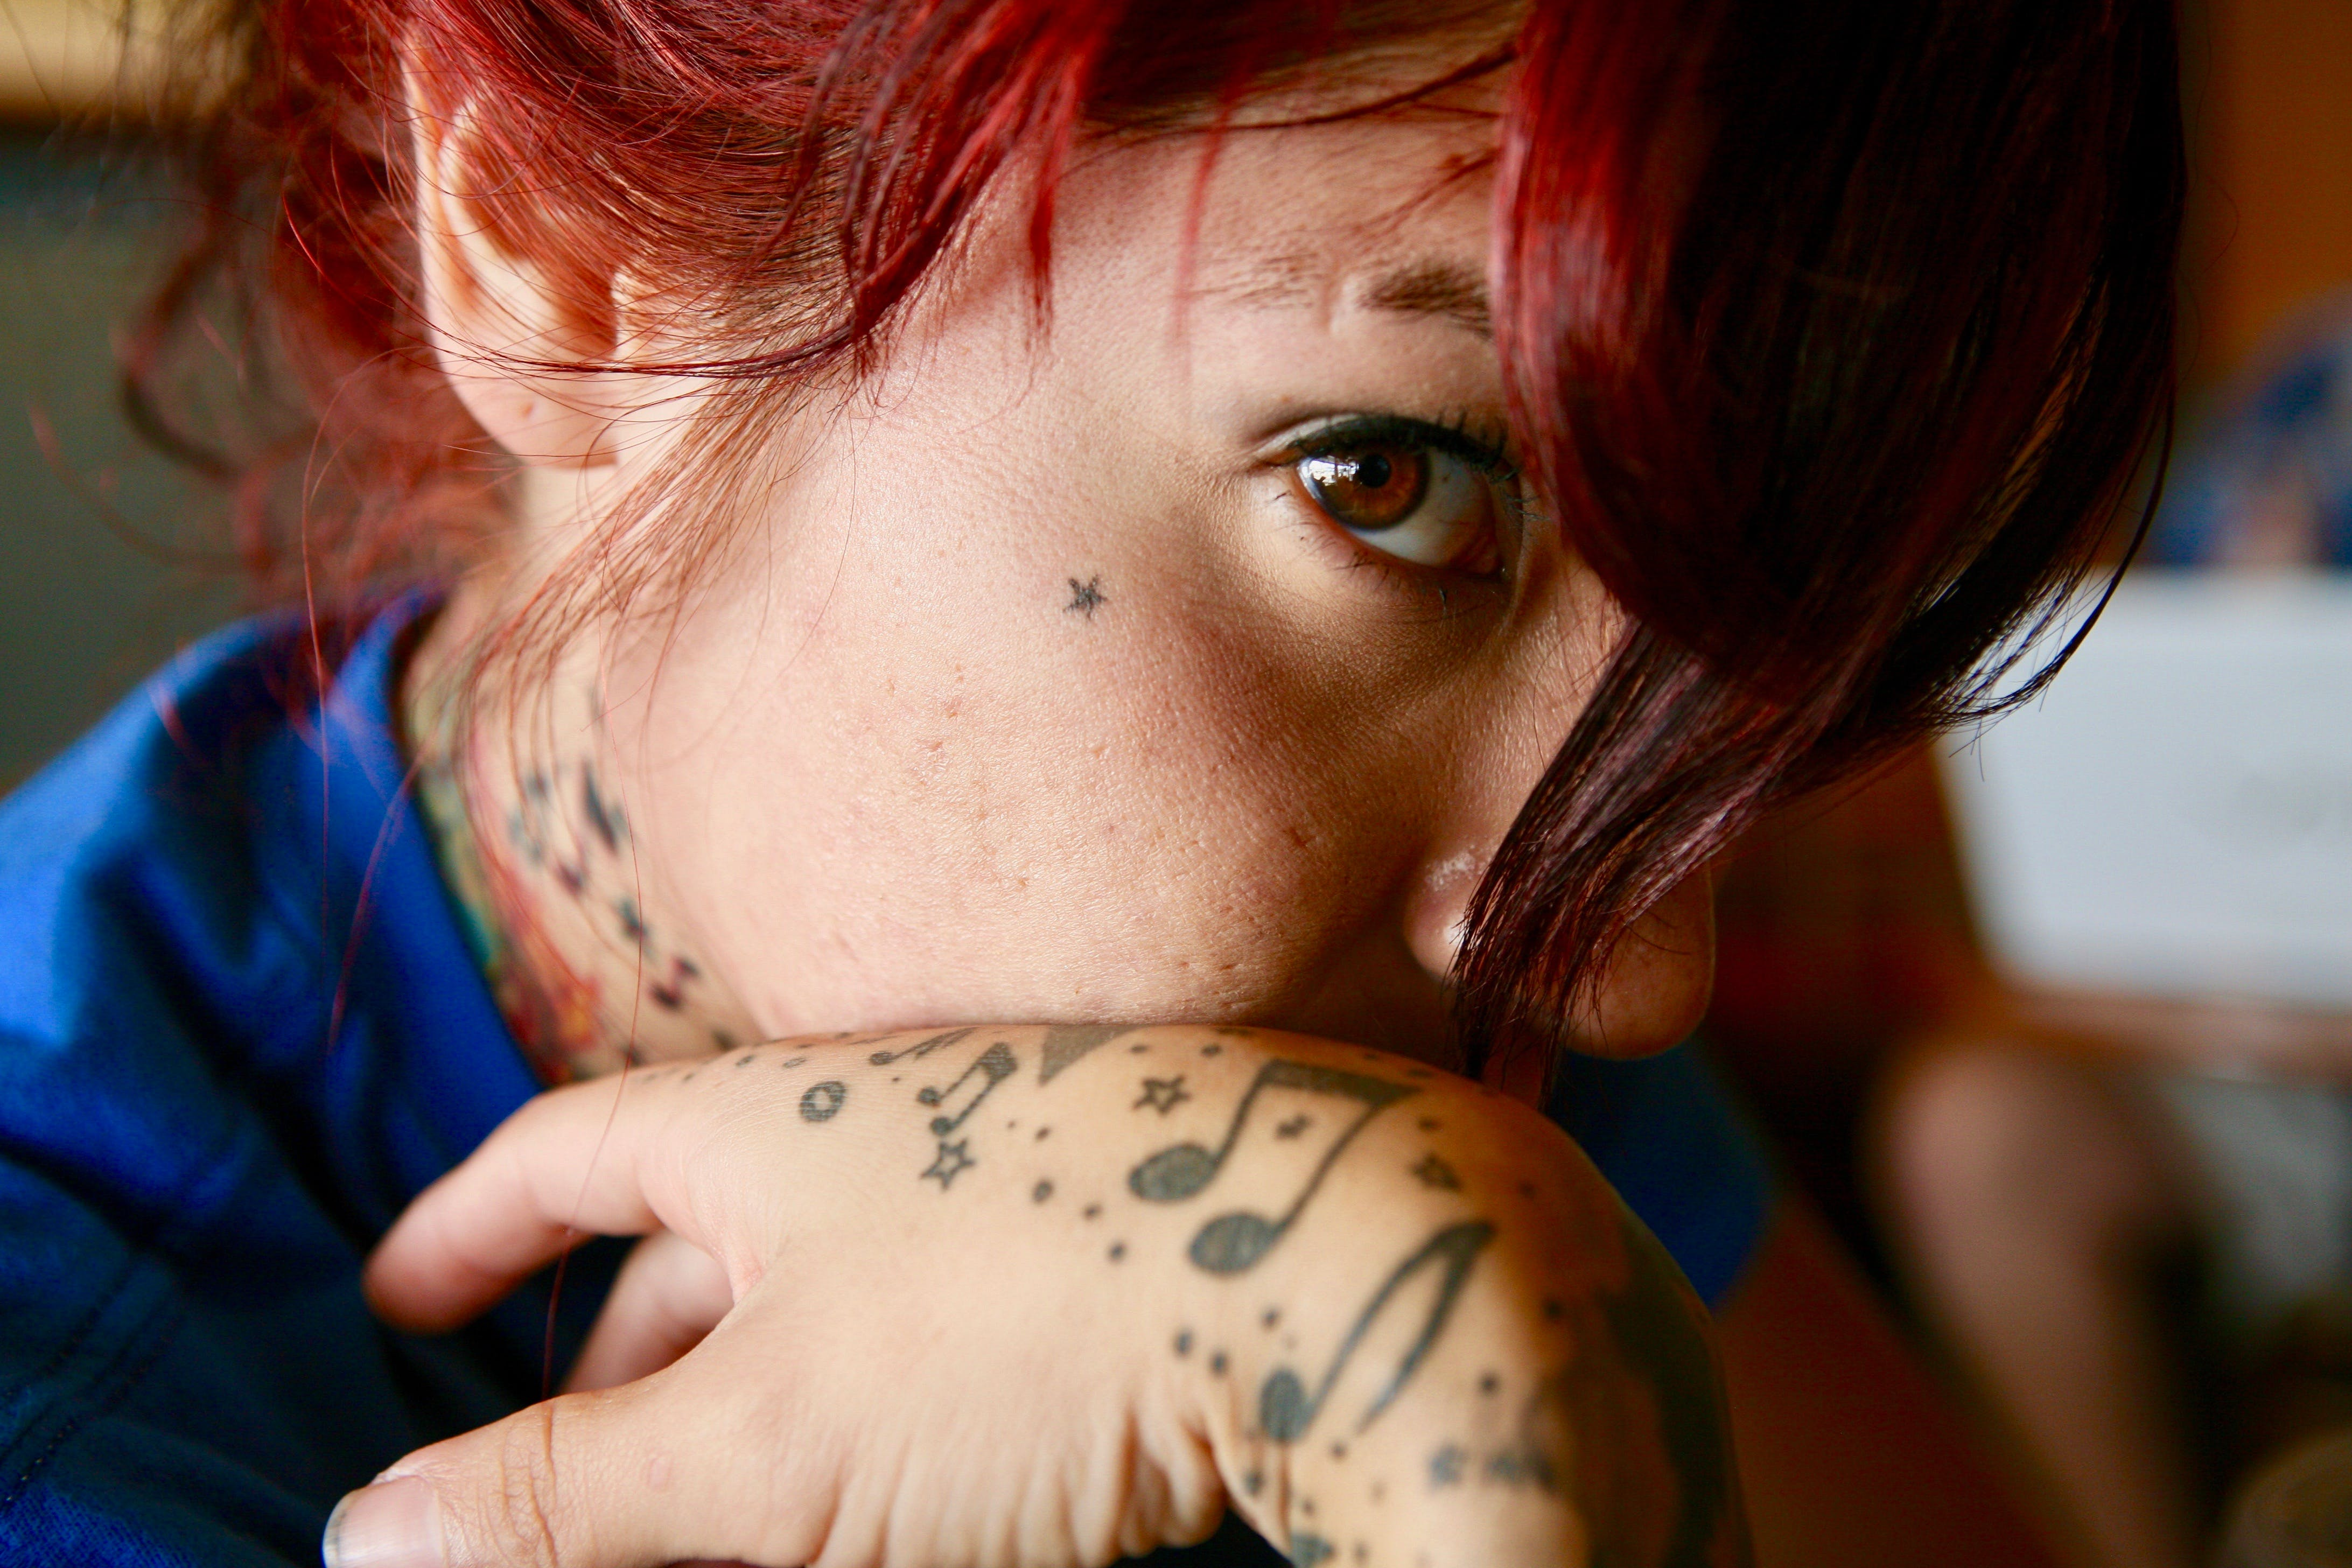 Close-up Photo of Woman with Tattoos